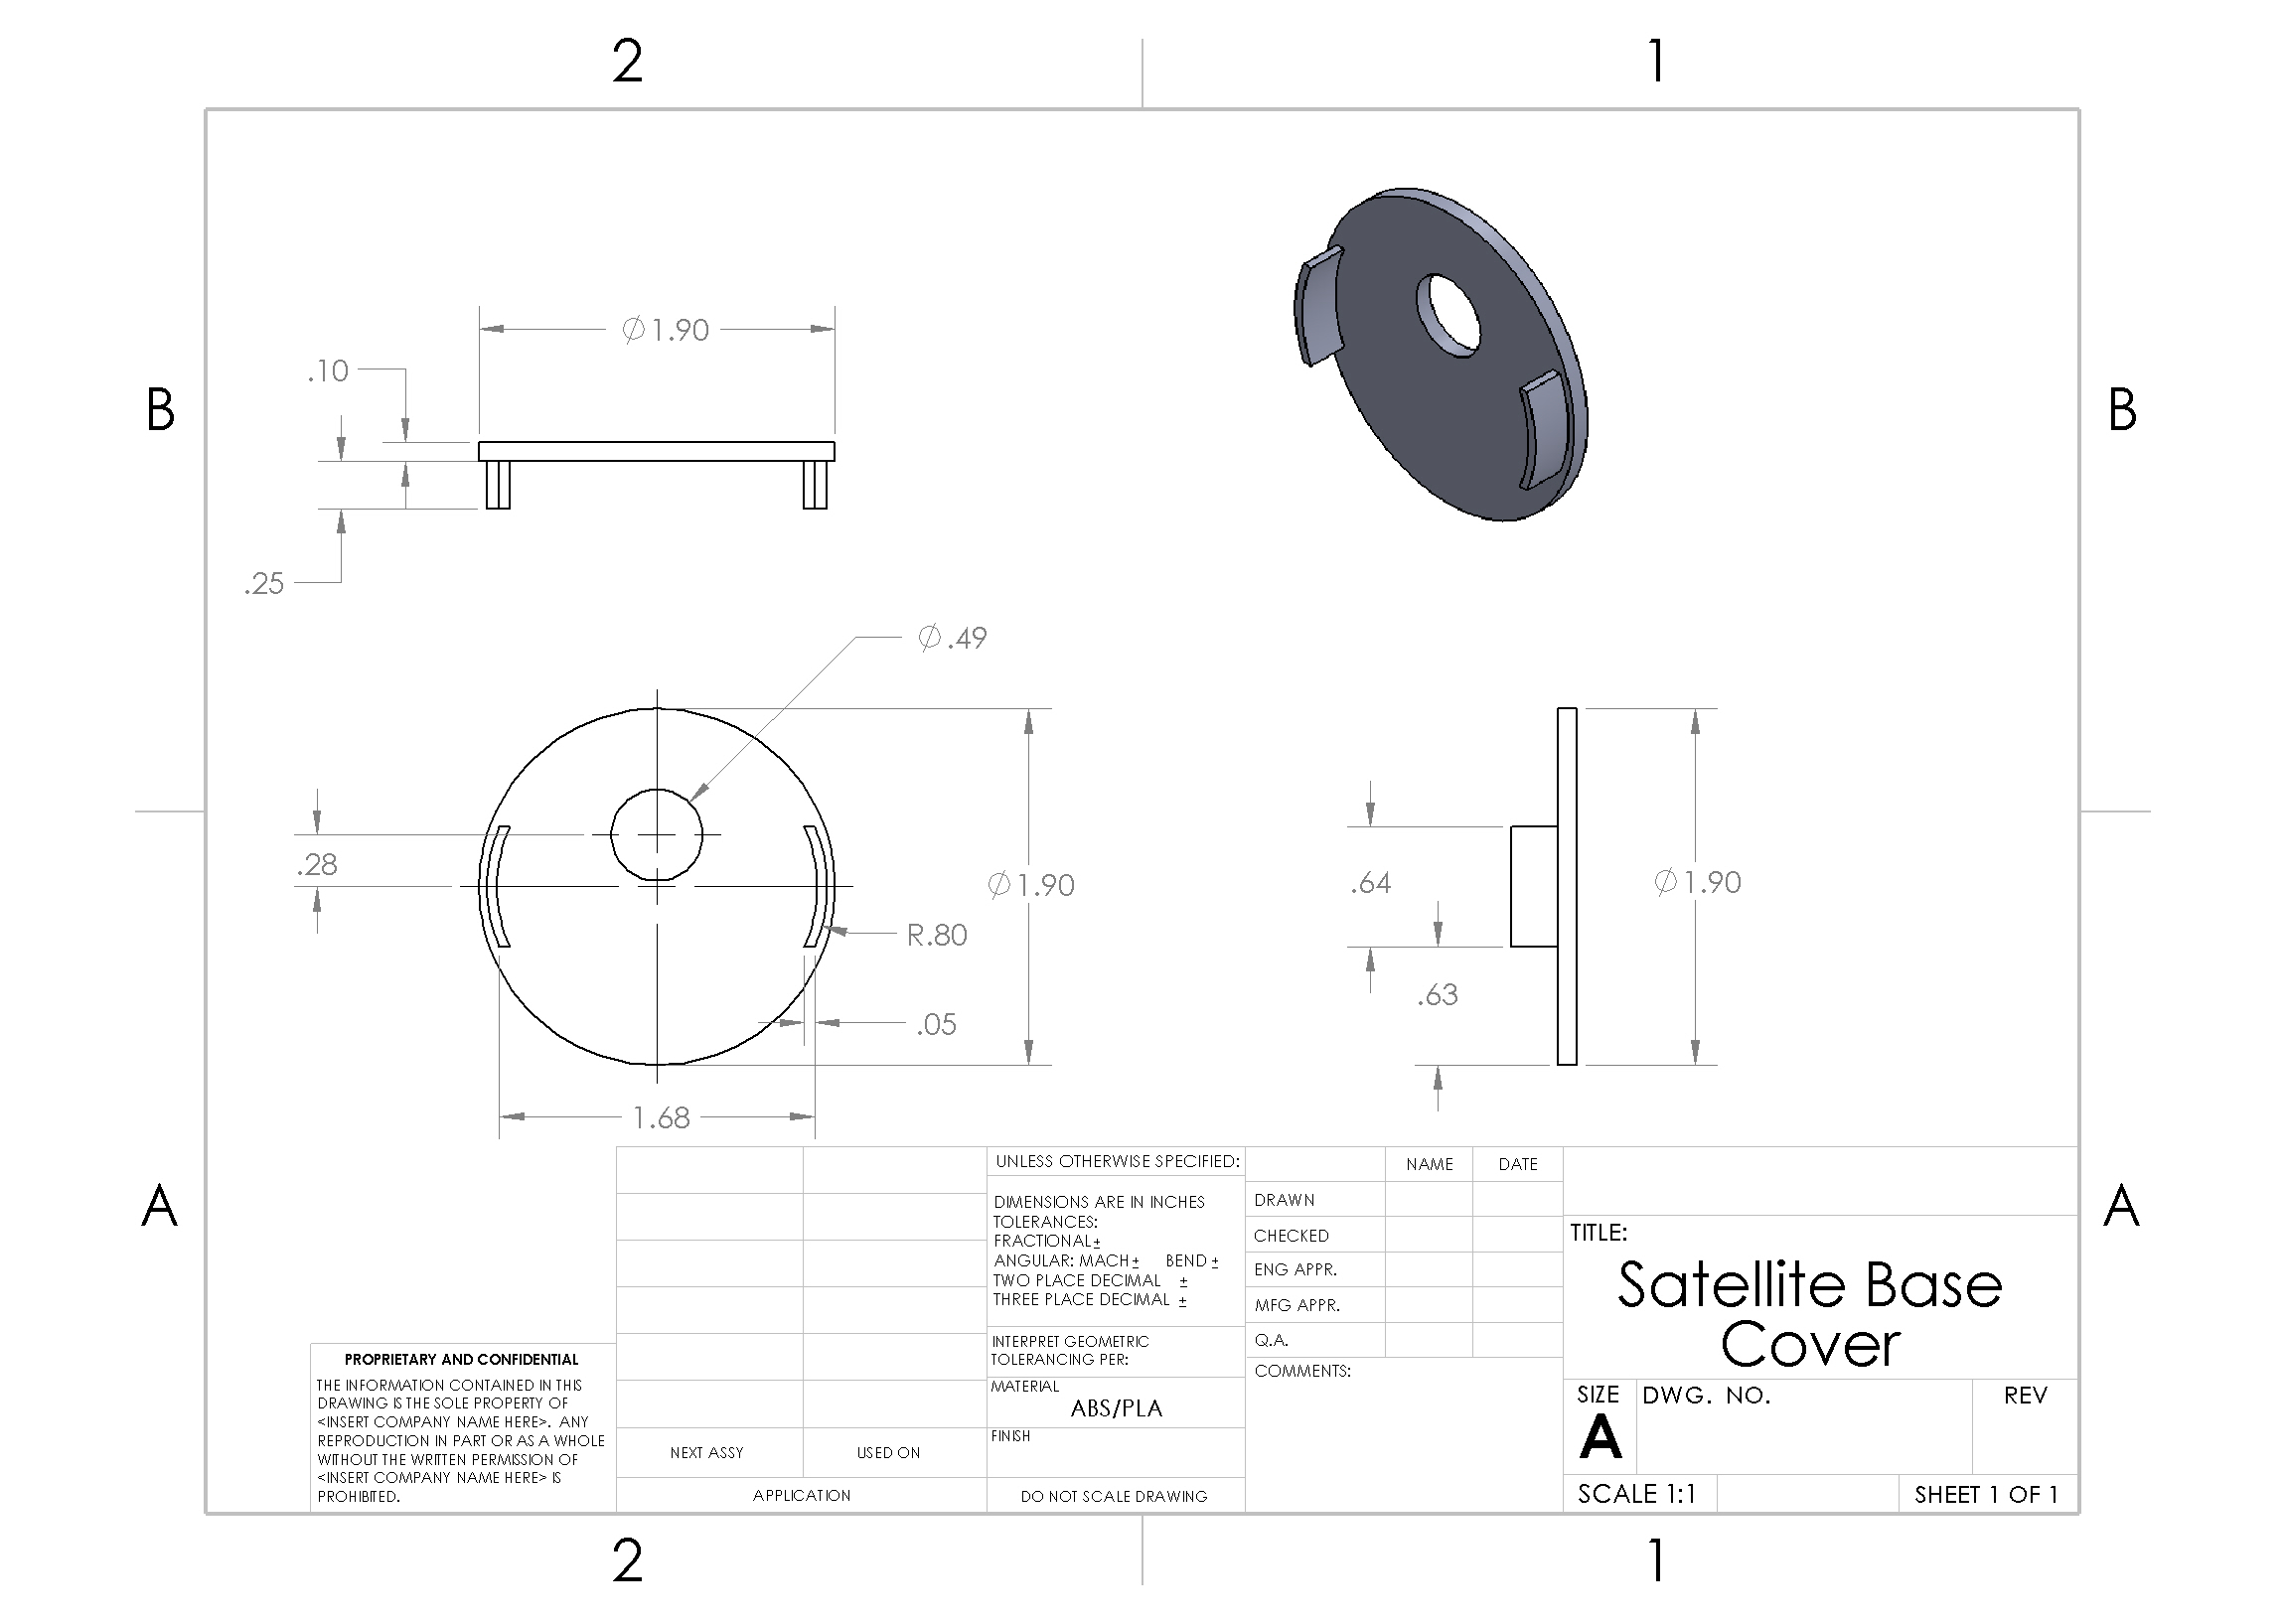 Picture of Schematics and Dimensions - Base Cover